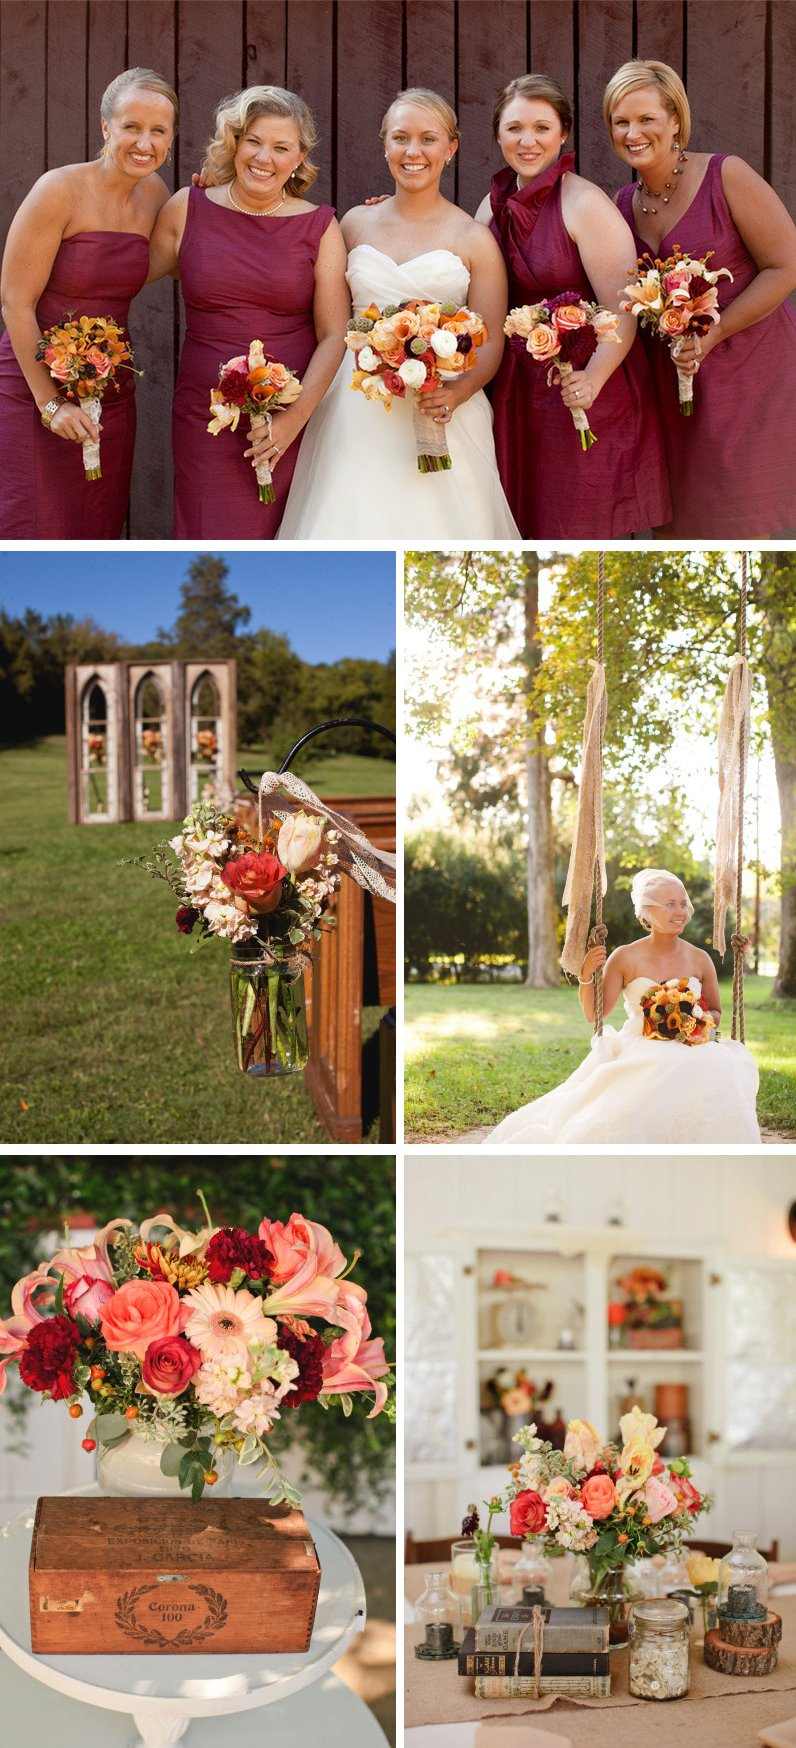 Outdoor Country Western Themed Wedding Colorful Wedding Flowers